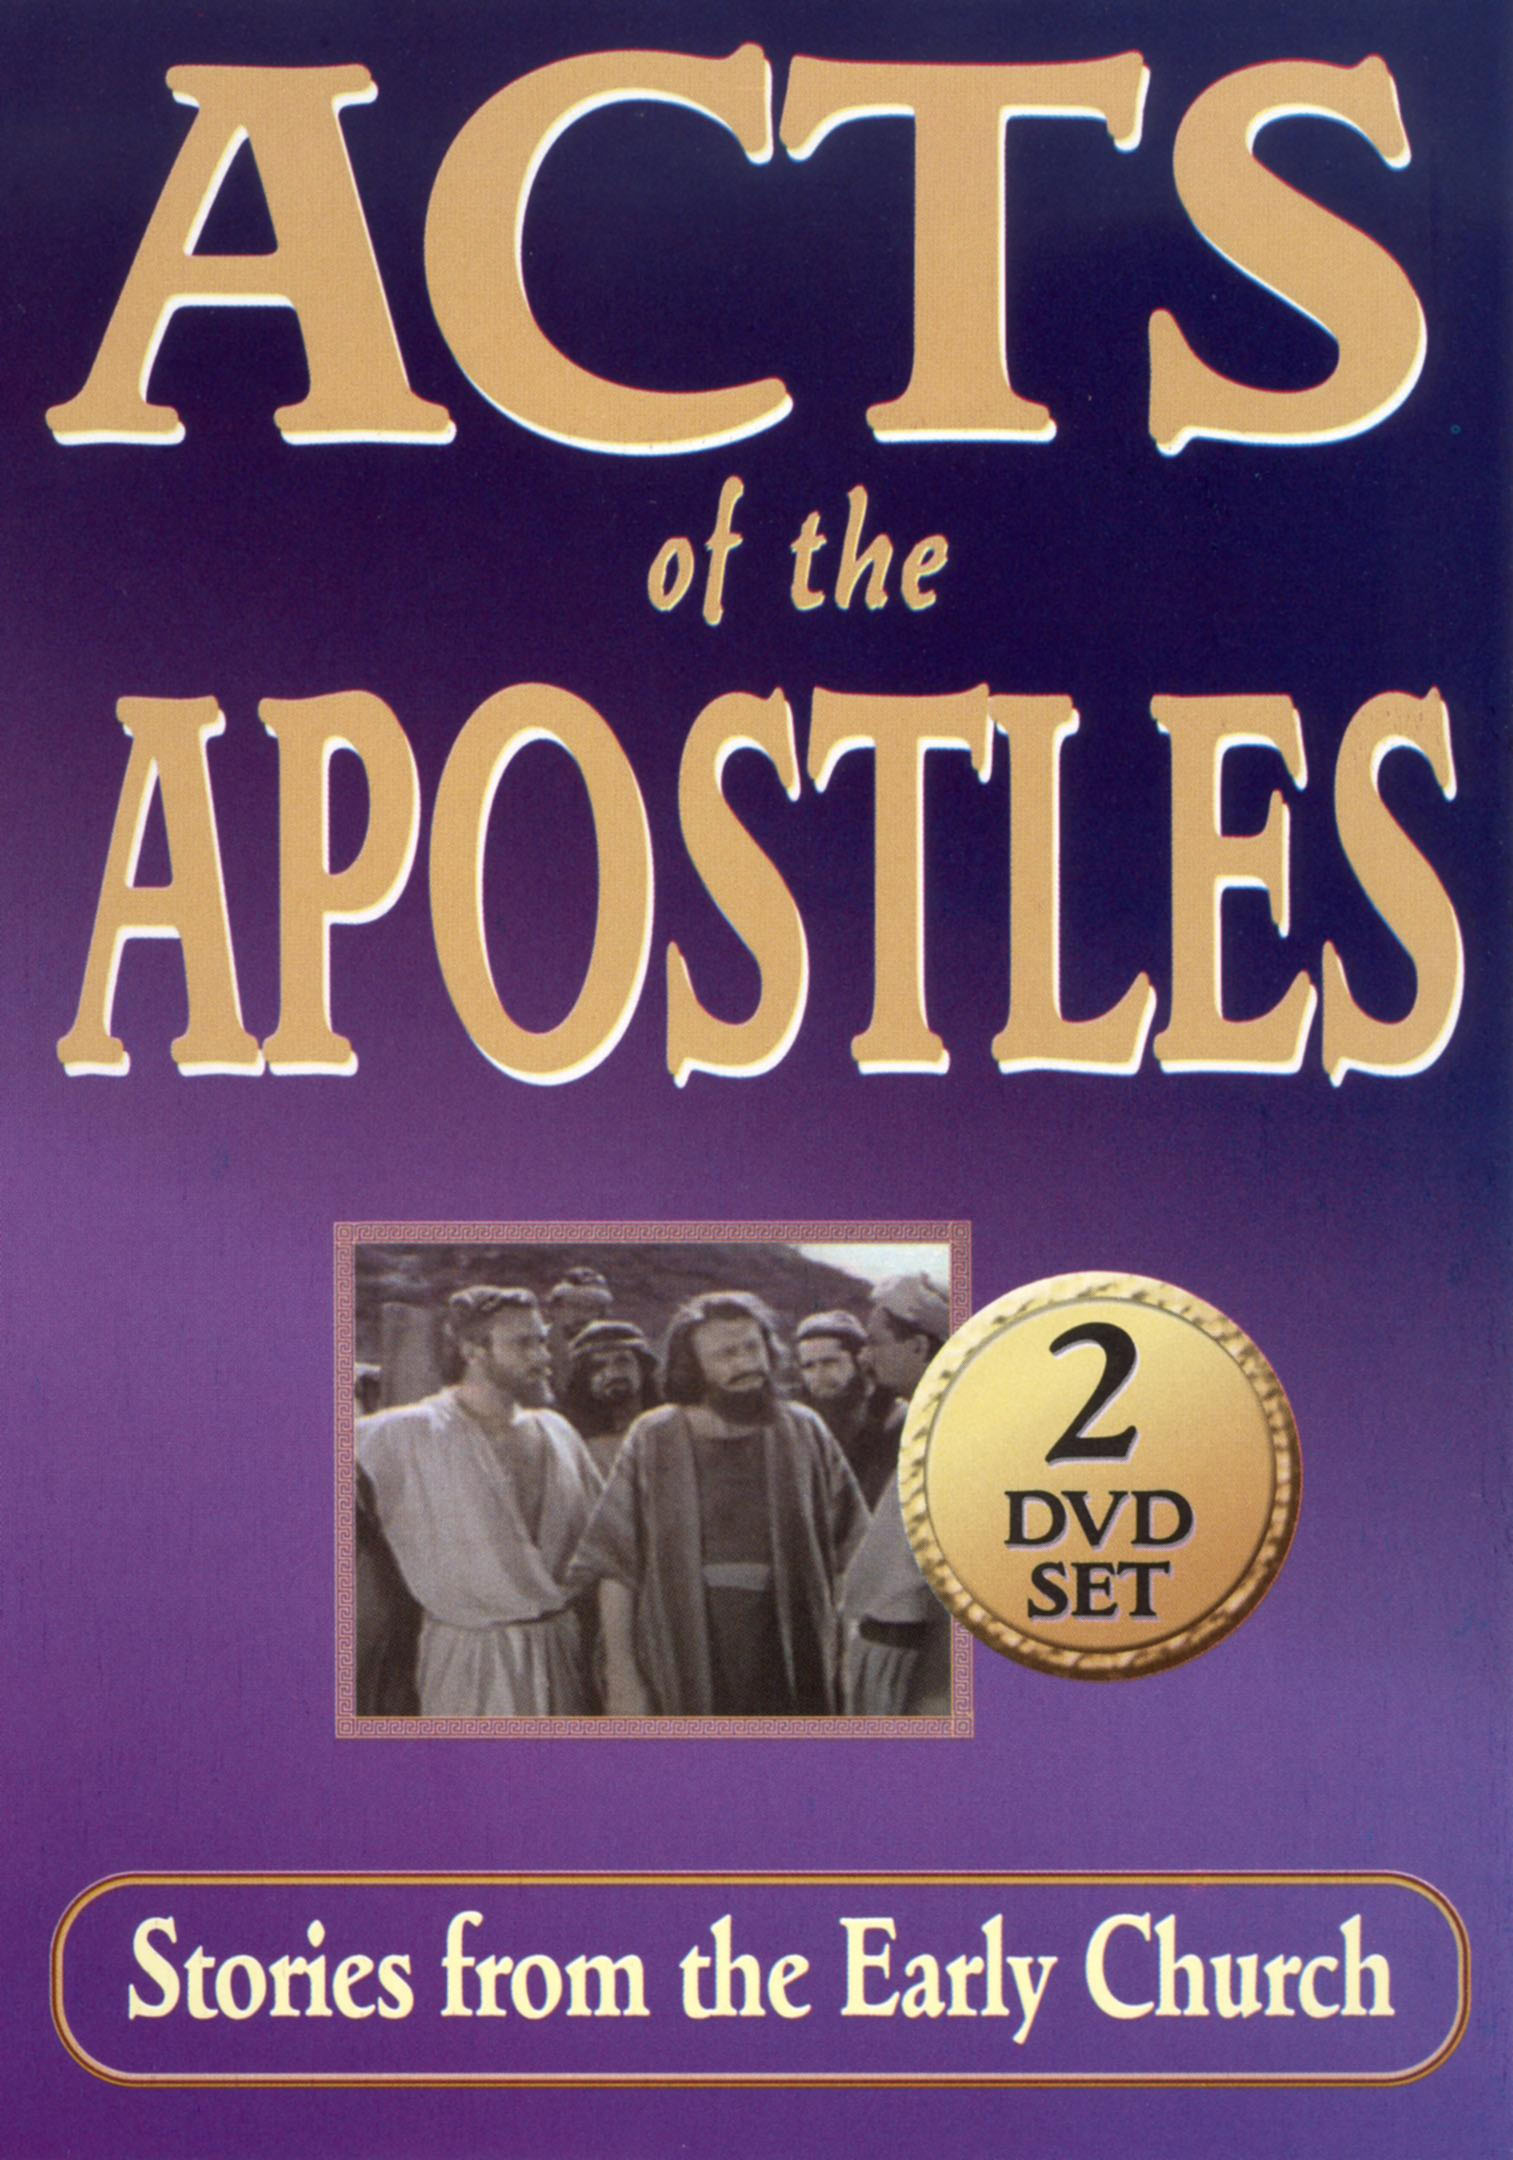 act of the apostles A commentary on acts of the apostles by j w mcgarvey this document has been generated from xsl (extensible stylesheet language) source with renderx xep formatter, version 373 client academic.